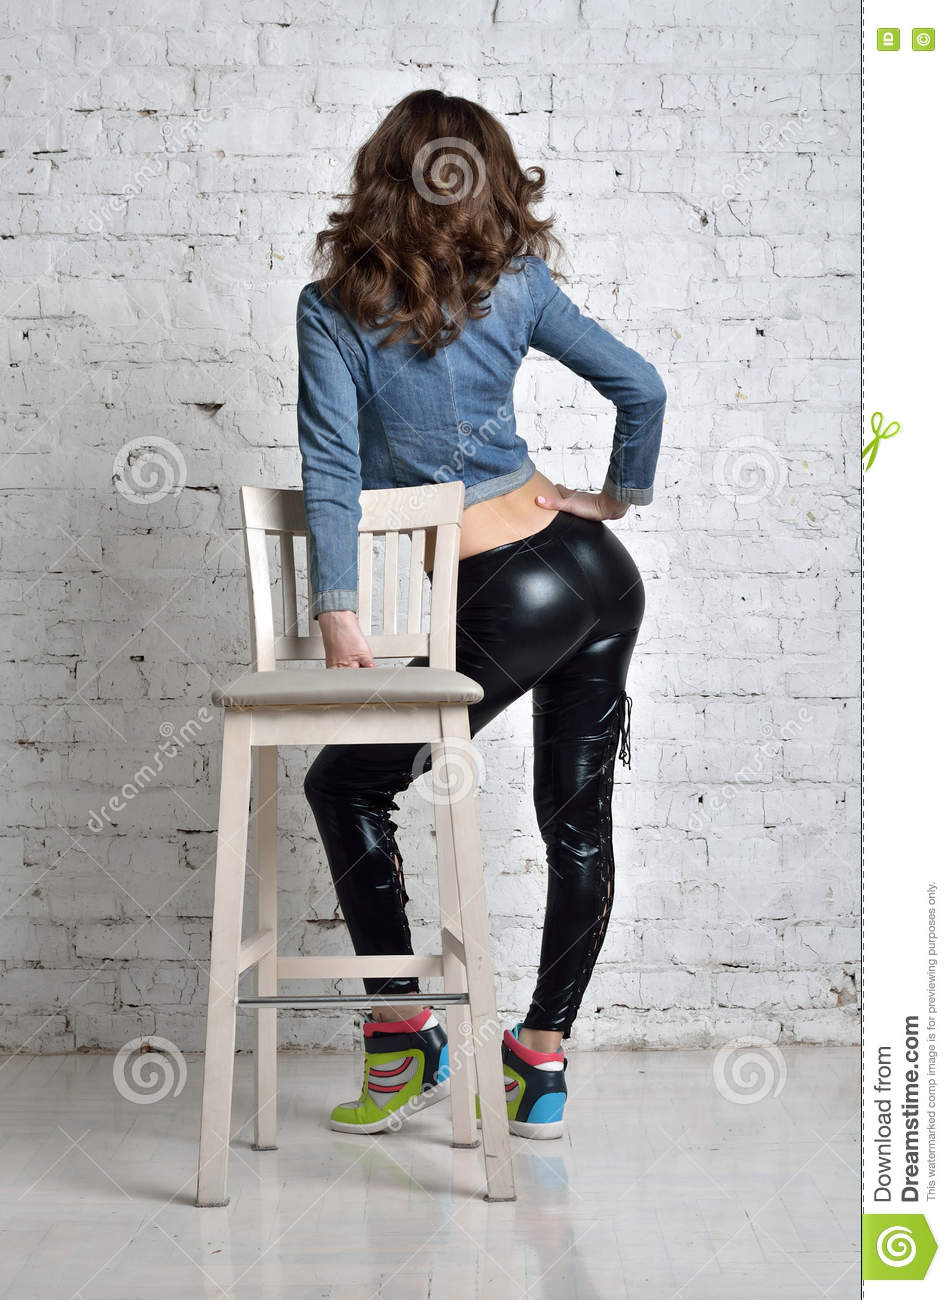 in black tights made of latex. stock image - image of jeans, tall